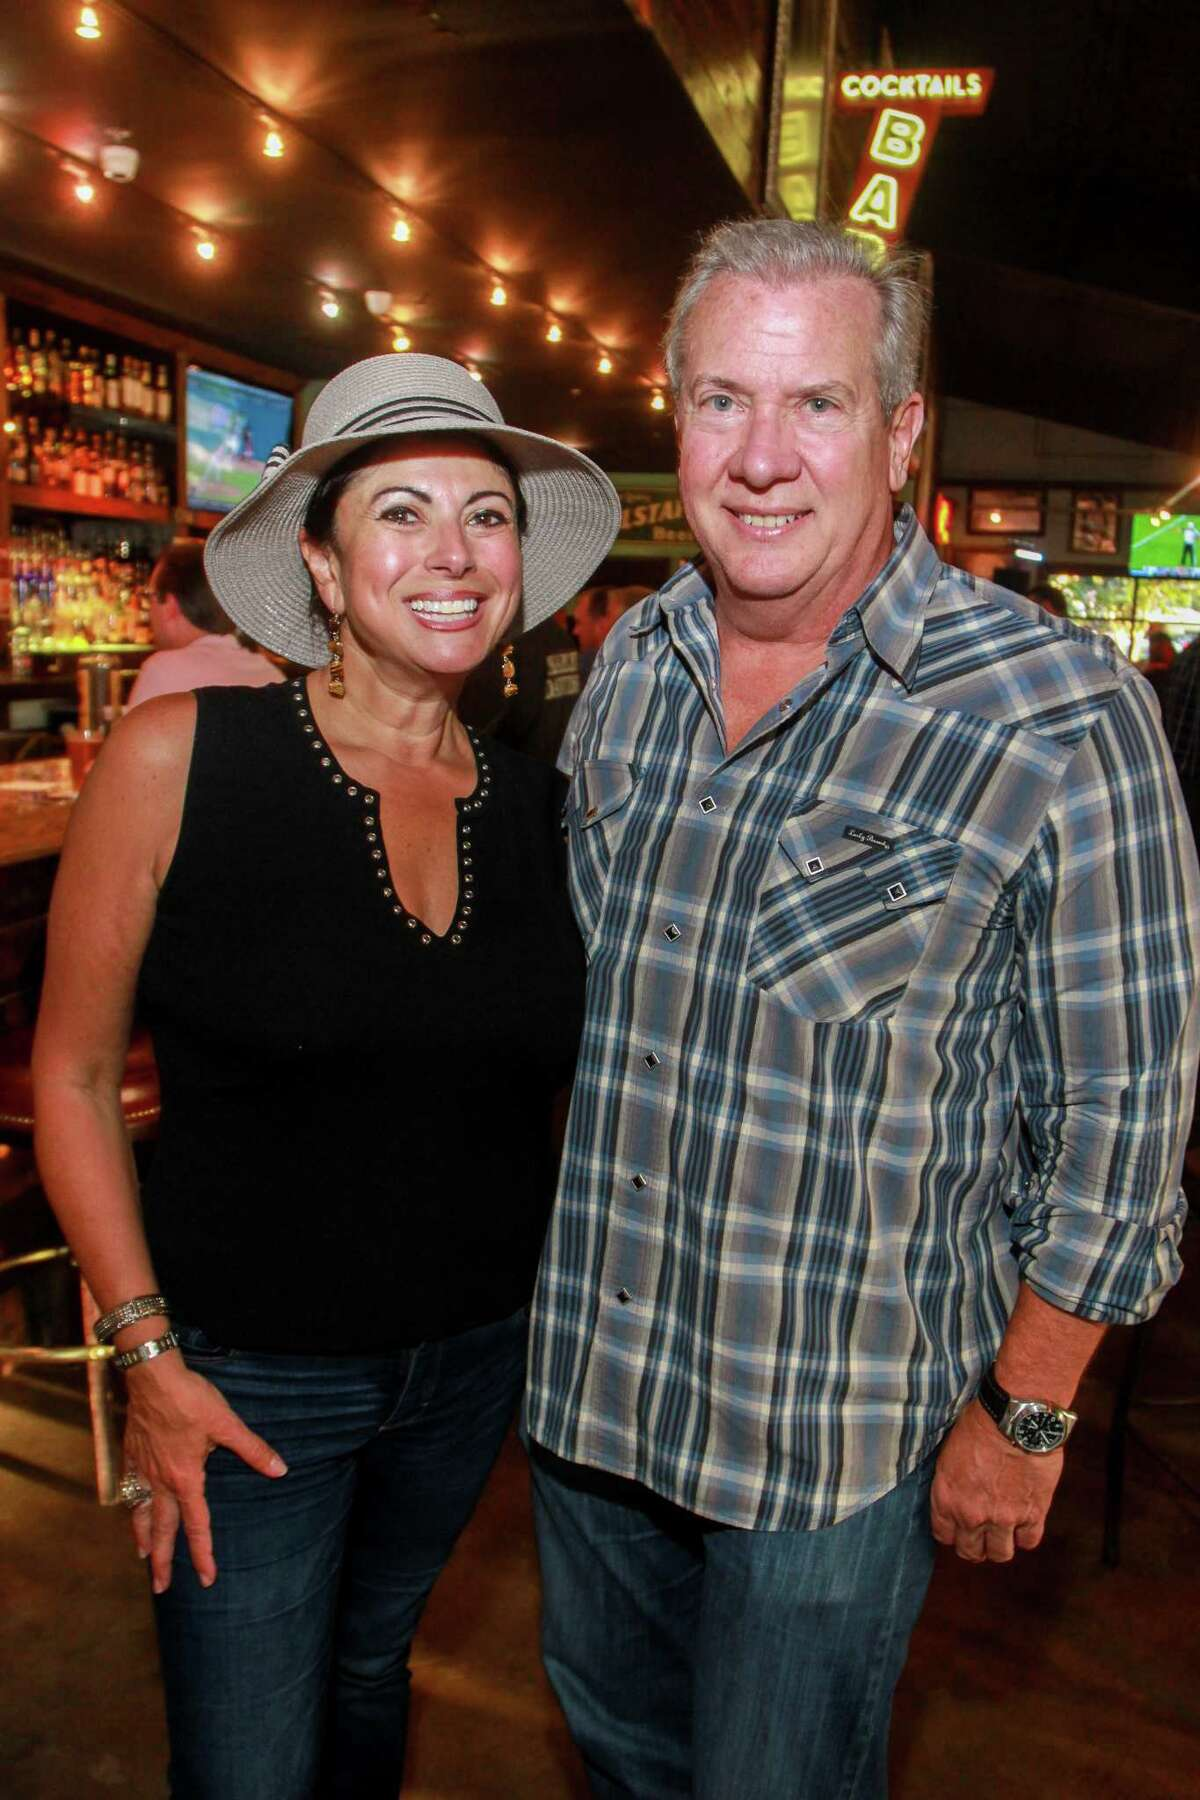 Co-chairs Christine and Steve Johnson at the A Place For Peanut event at the Kirby Ice House.